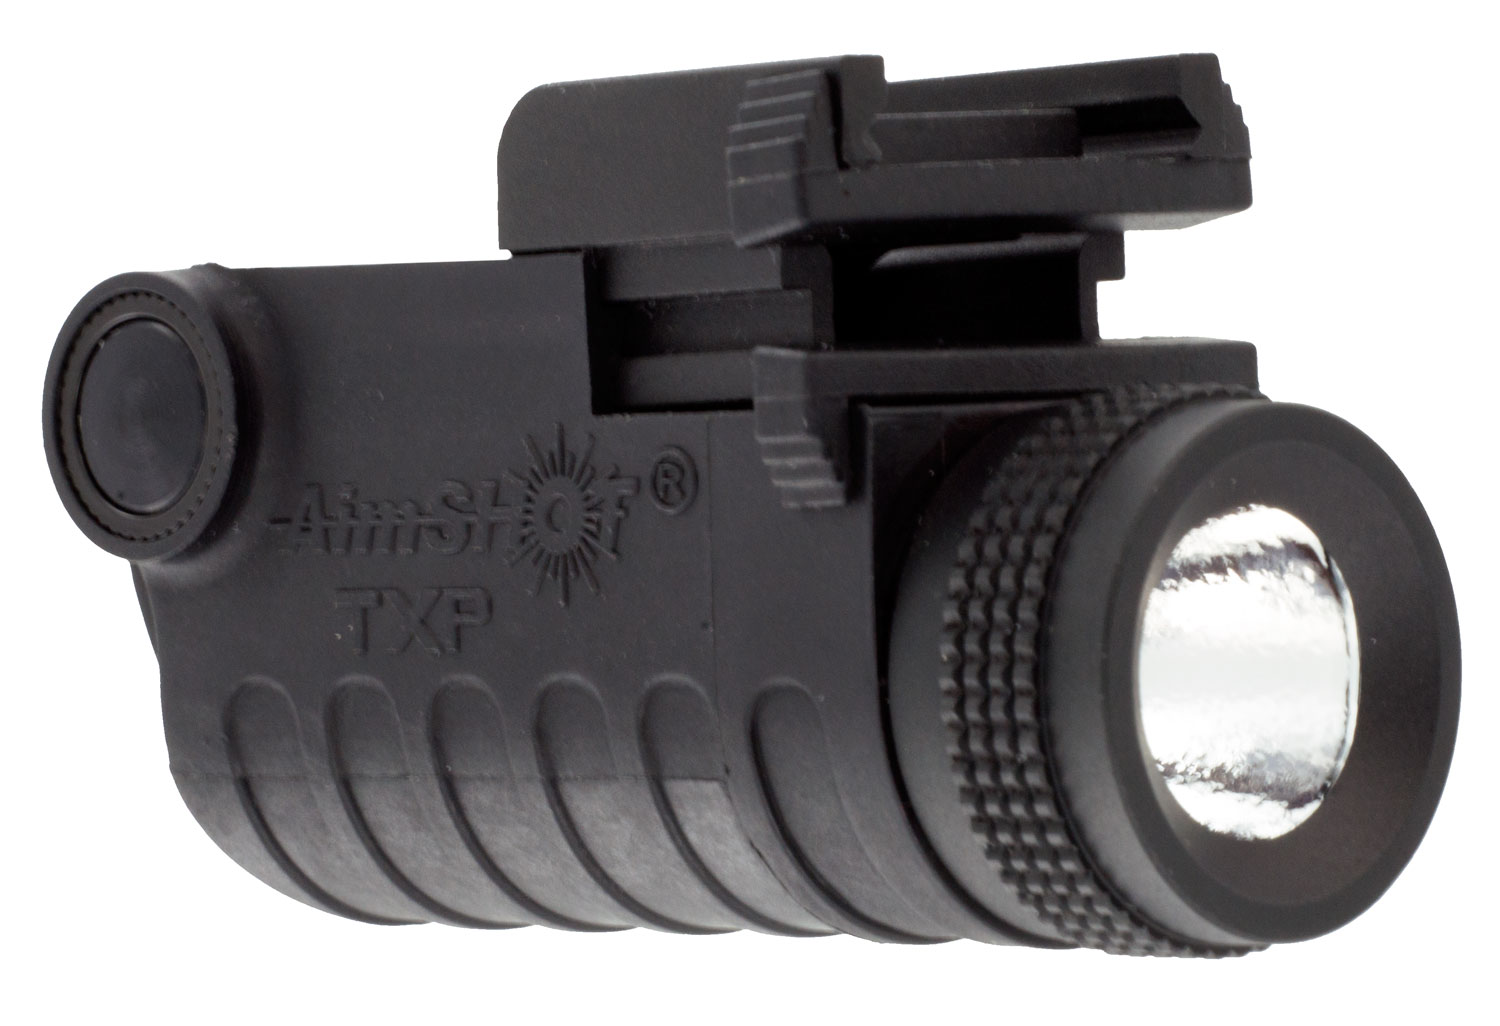 AIM TXP       PISTOL LED LIGHT RAILMNT